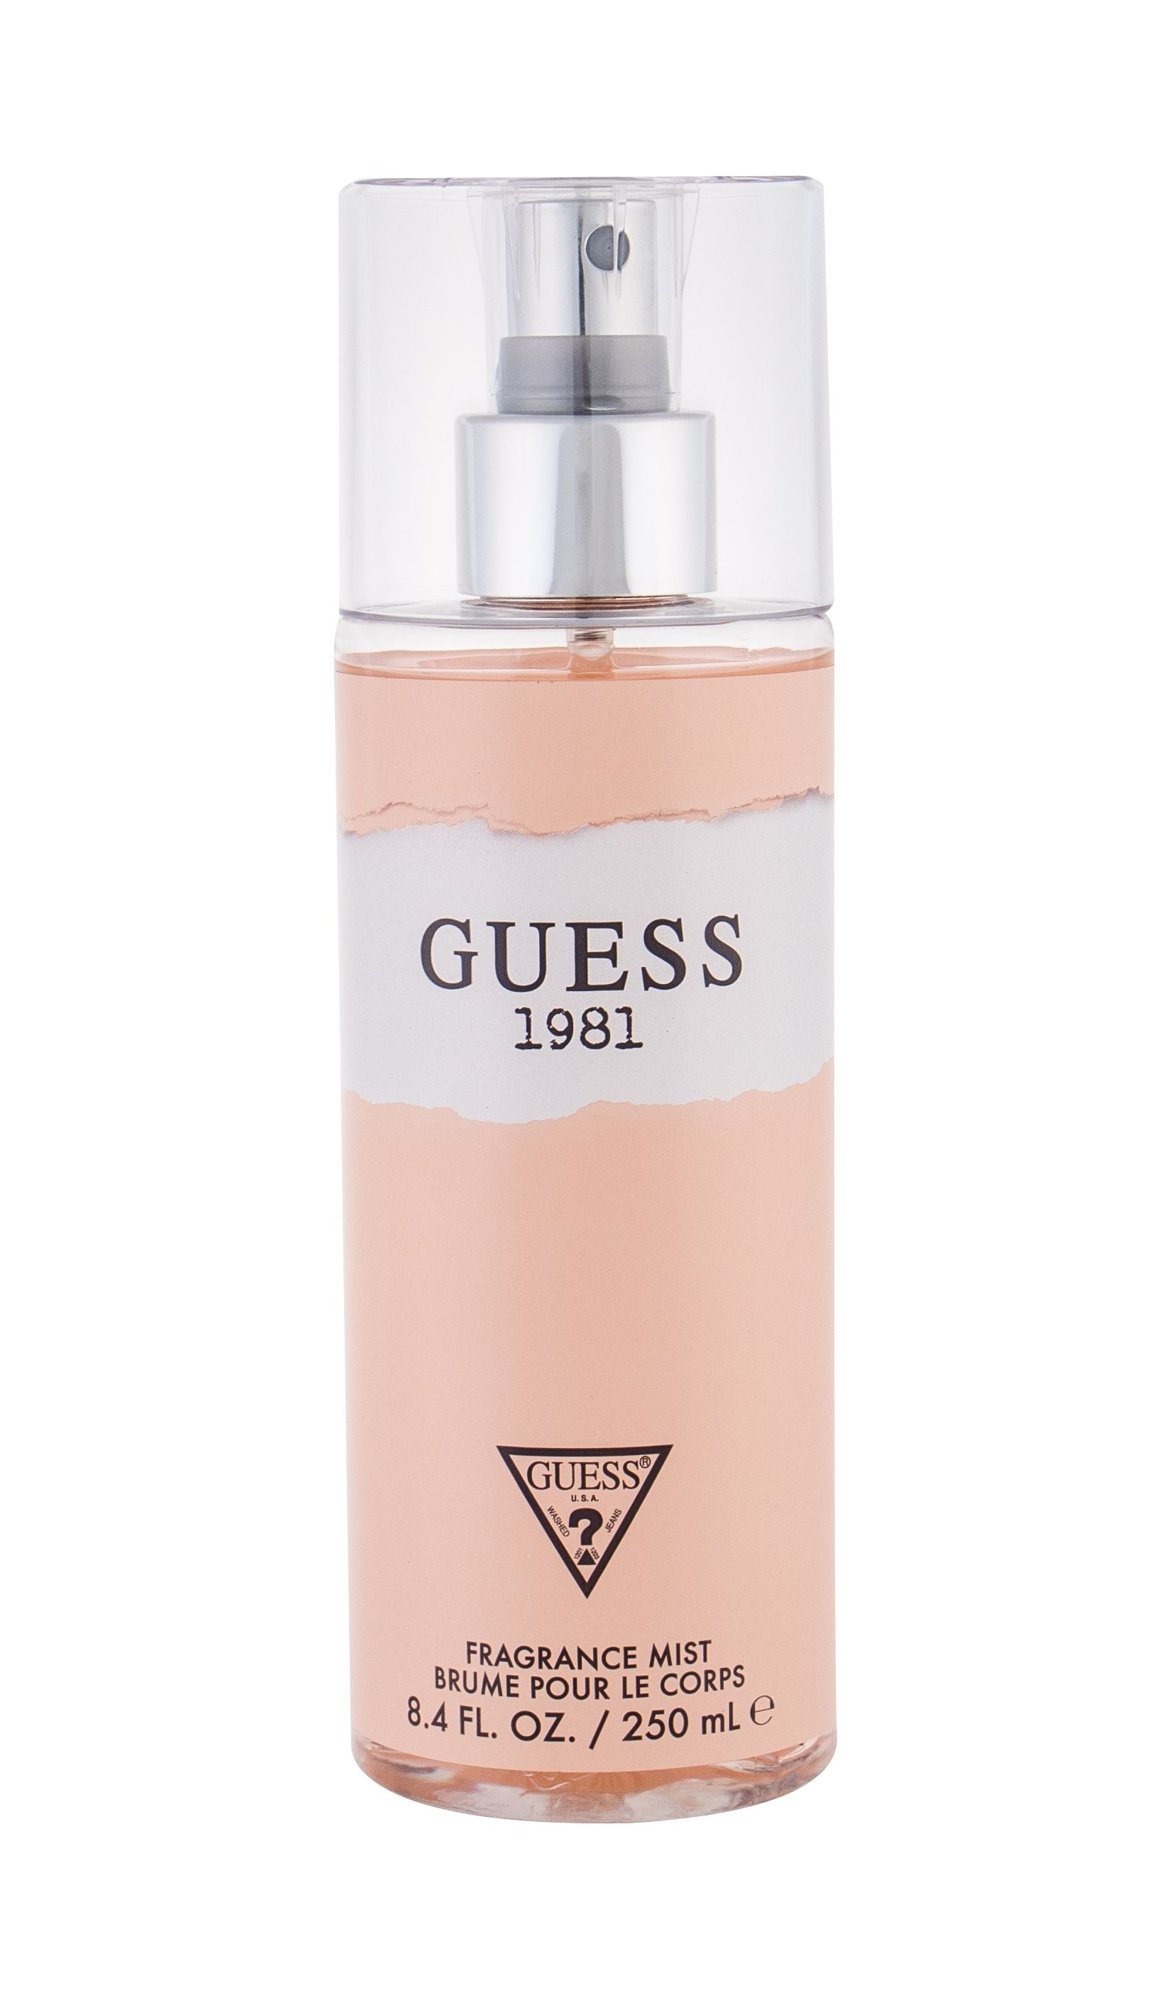 GUESS Guess 1981 Body Spray 250ml